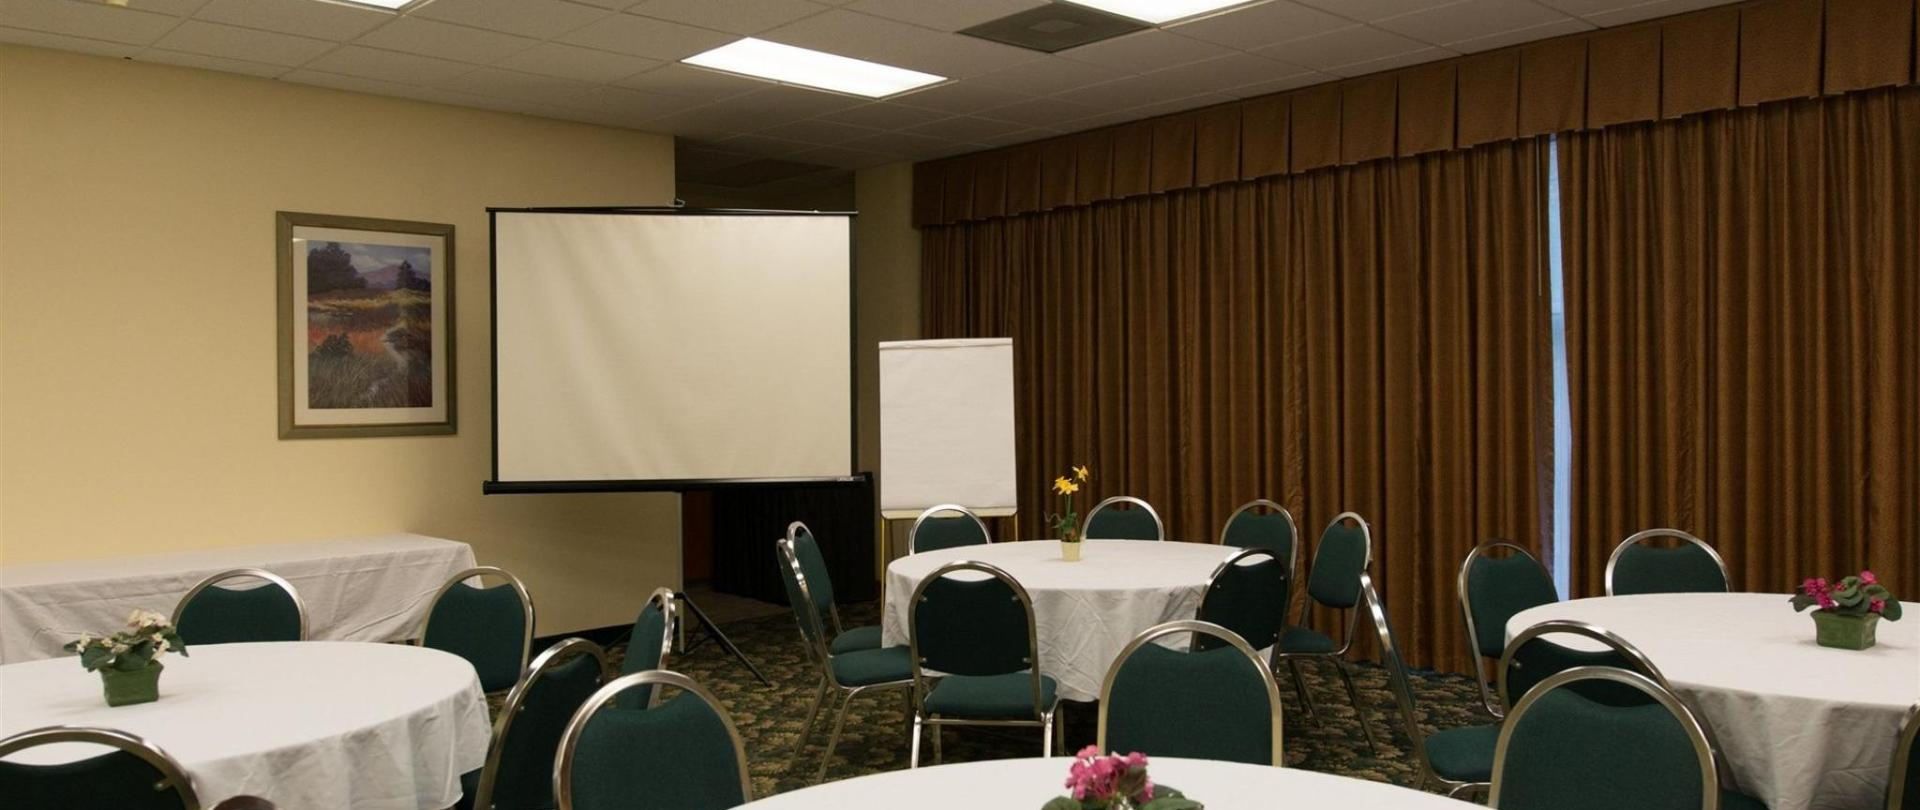 meeting-room-3-1.jpg